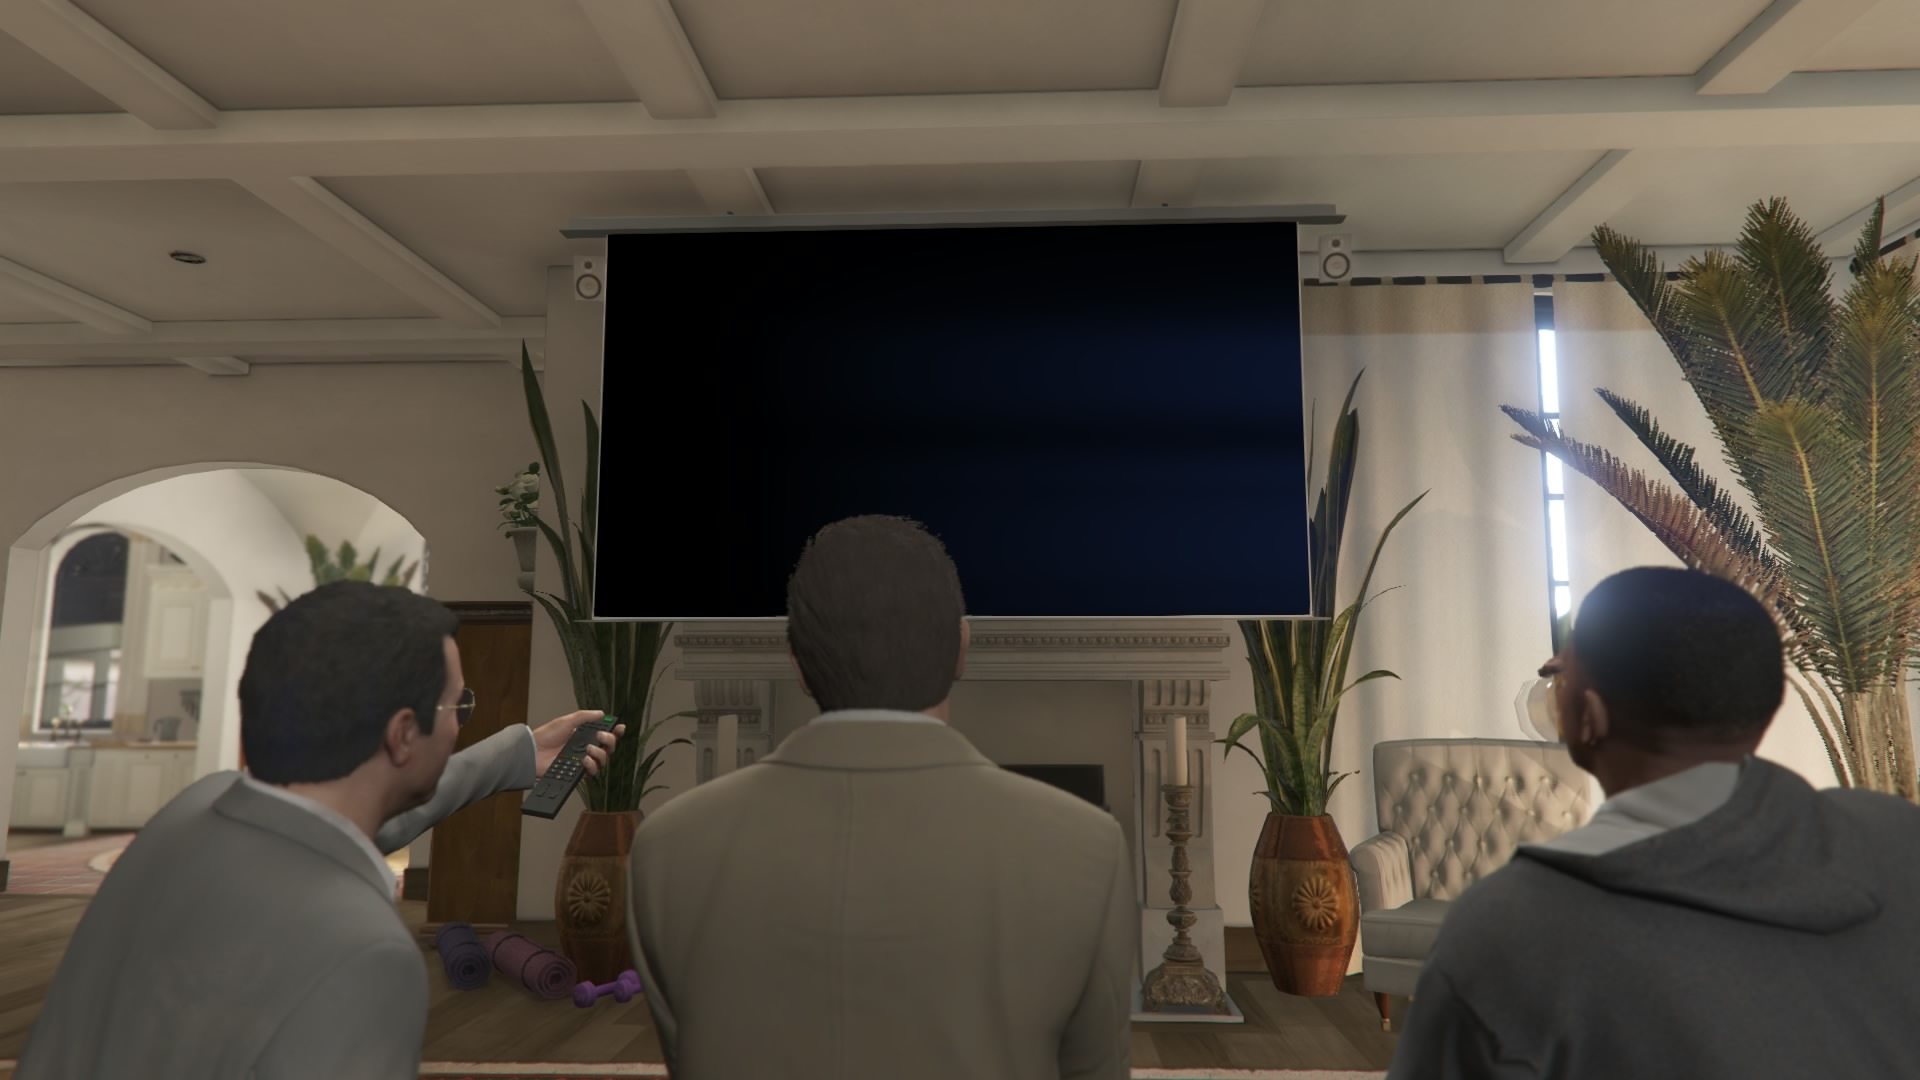 Television in GTA V | GTA Wiki | FANDOM powered by Wikia